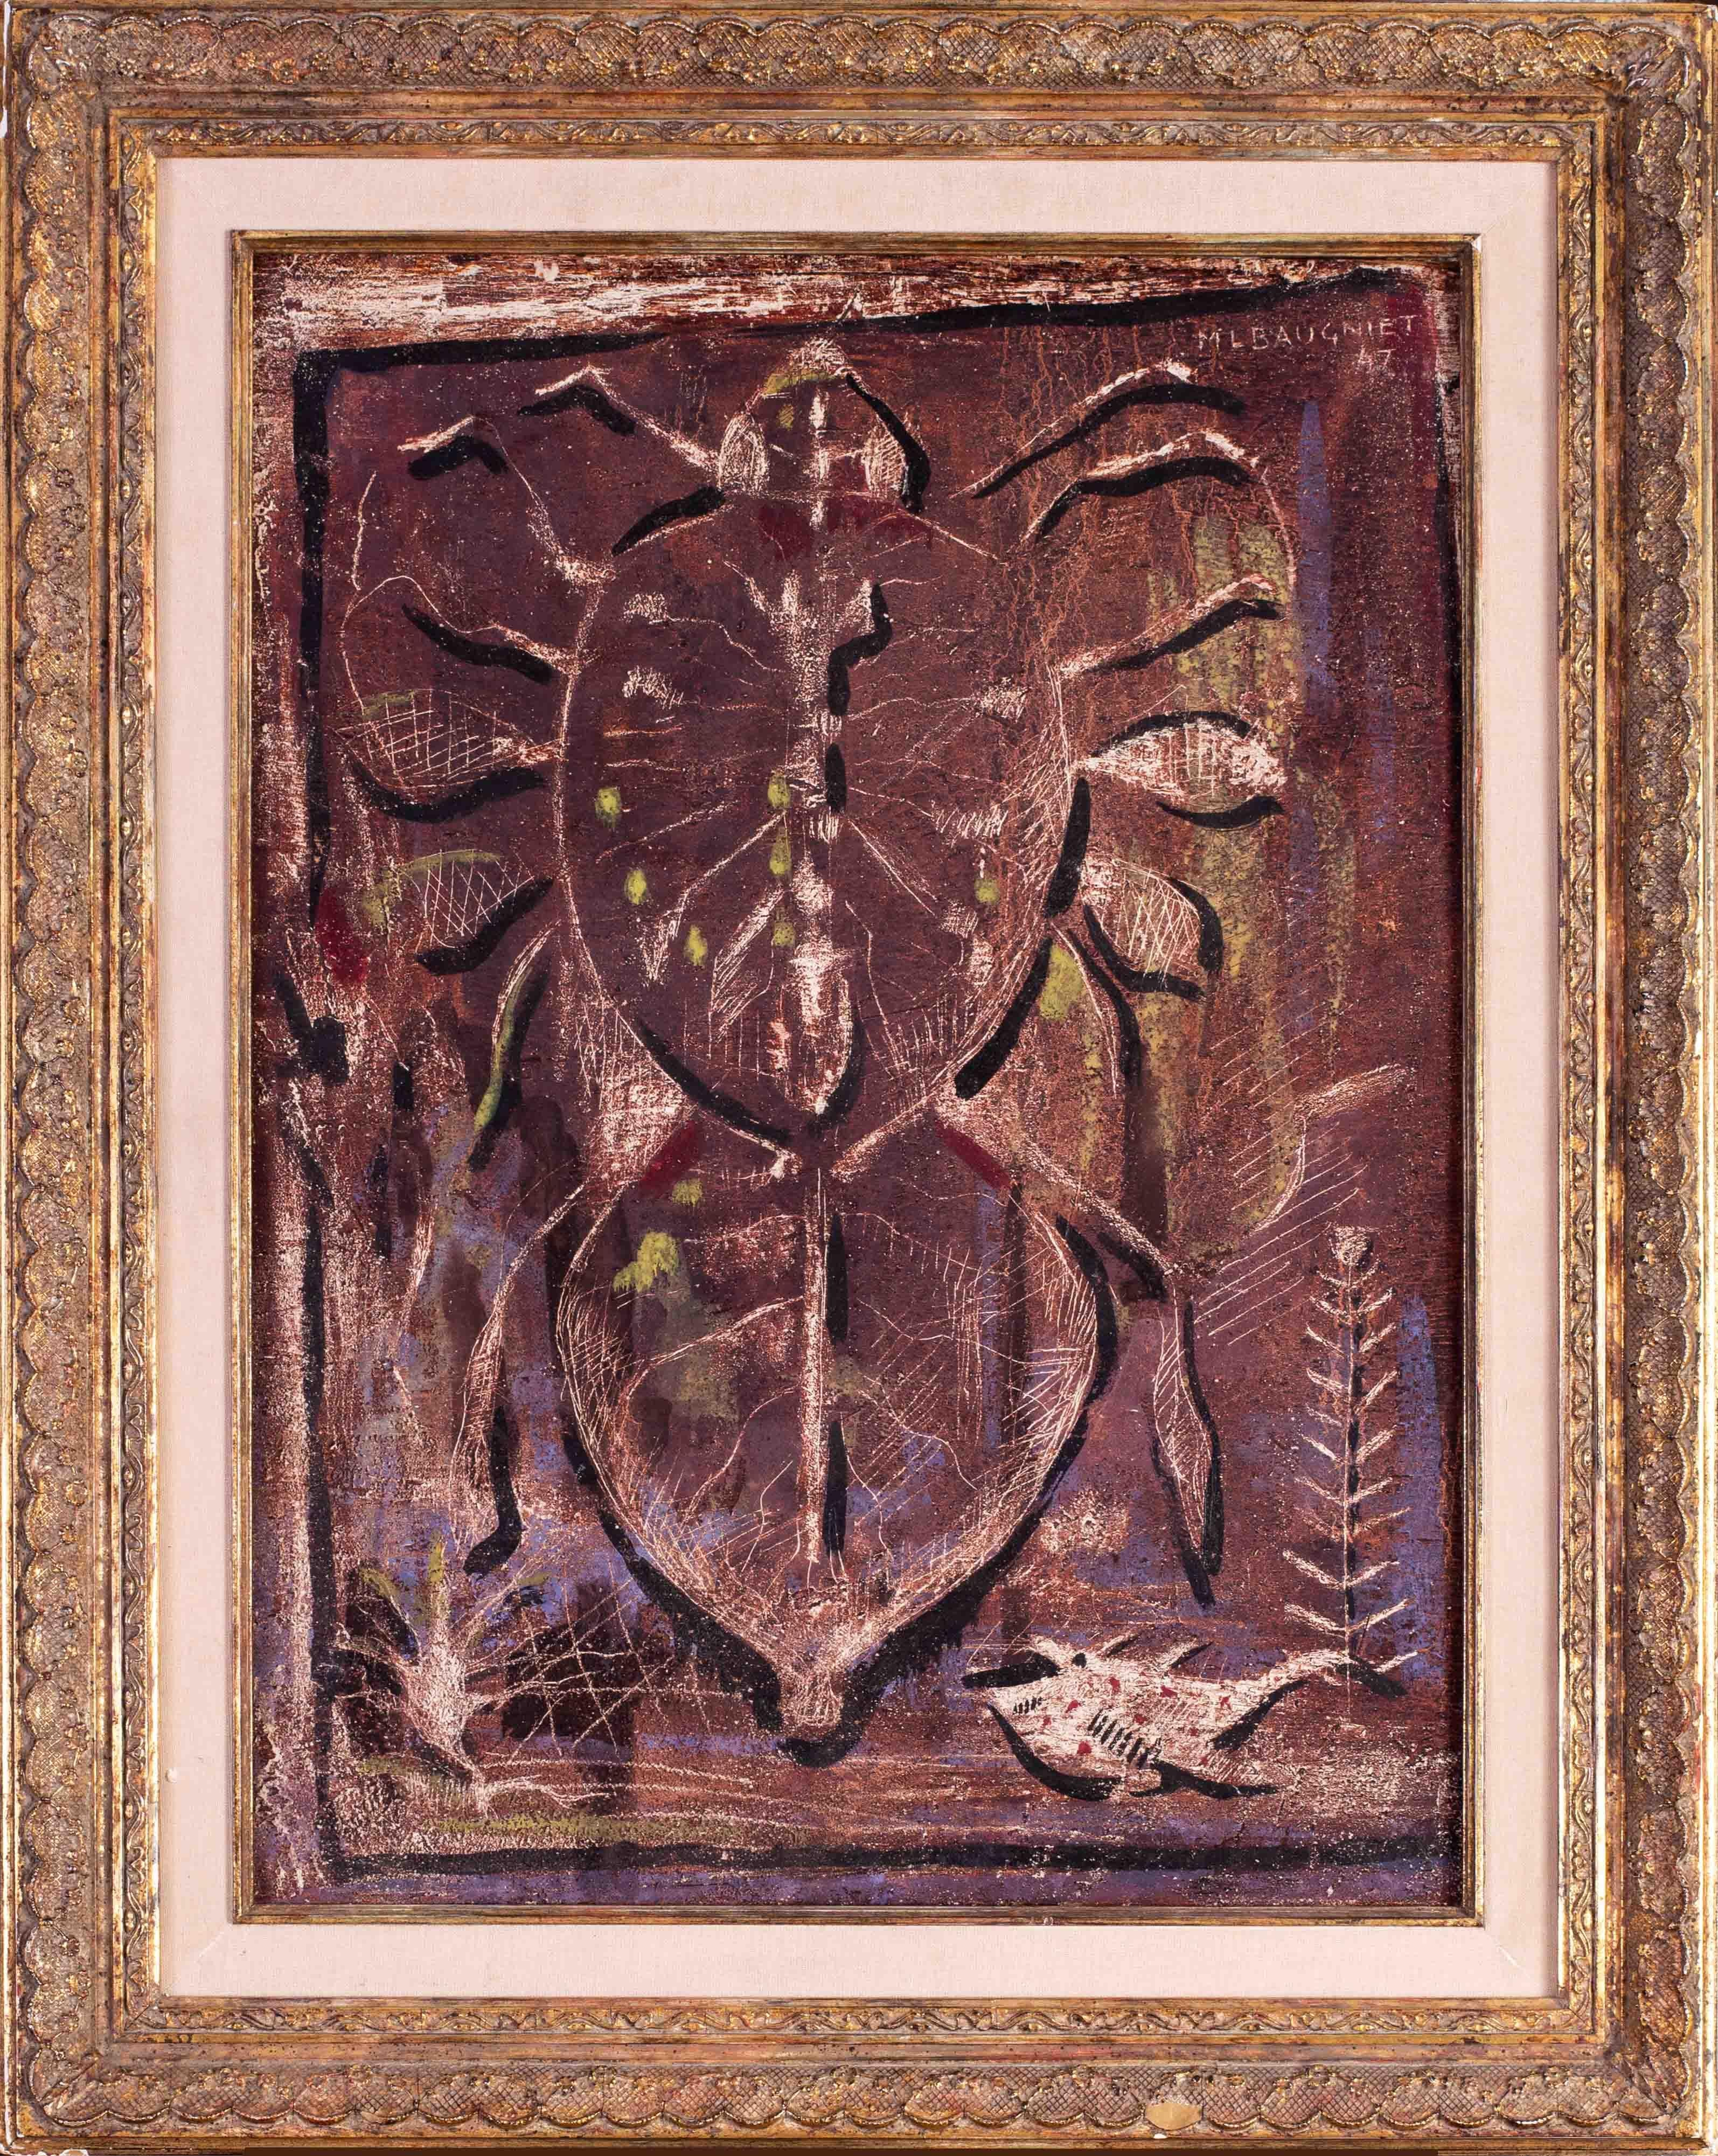 Mid 20th Century oil painting of a cicada by Belgian artist Baugniet